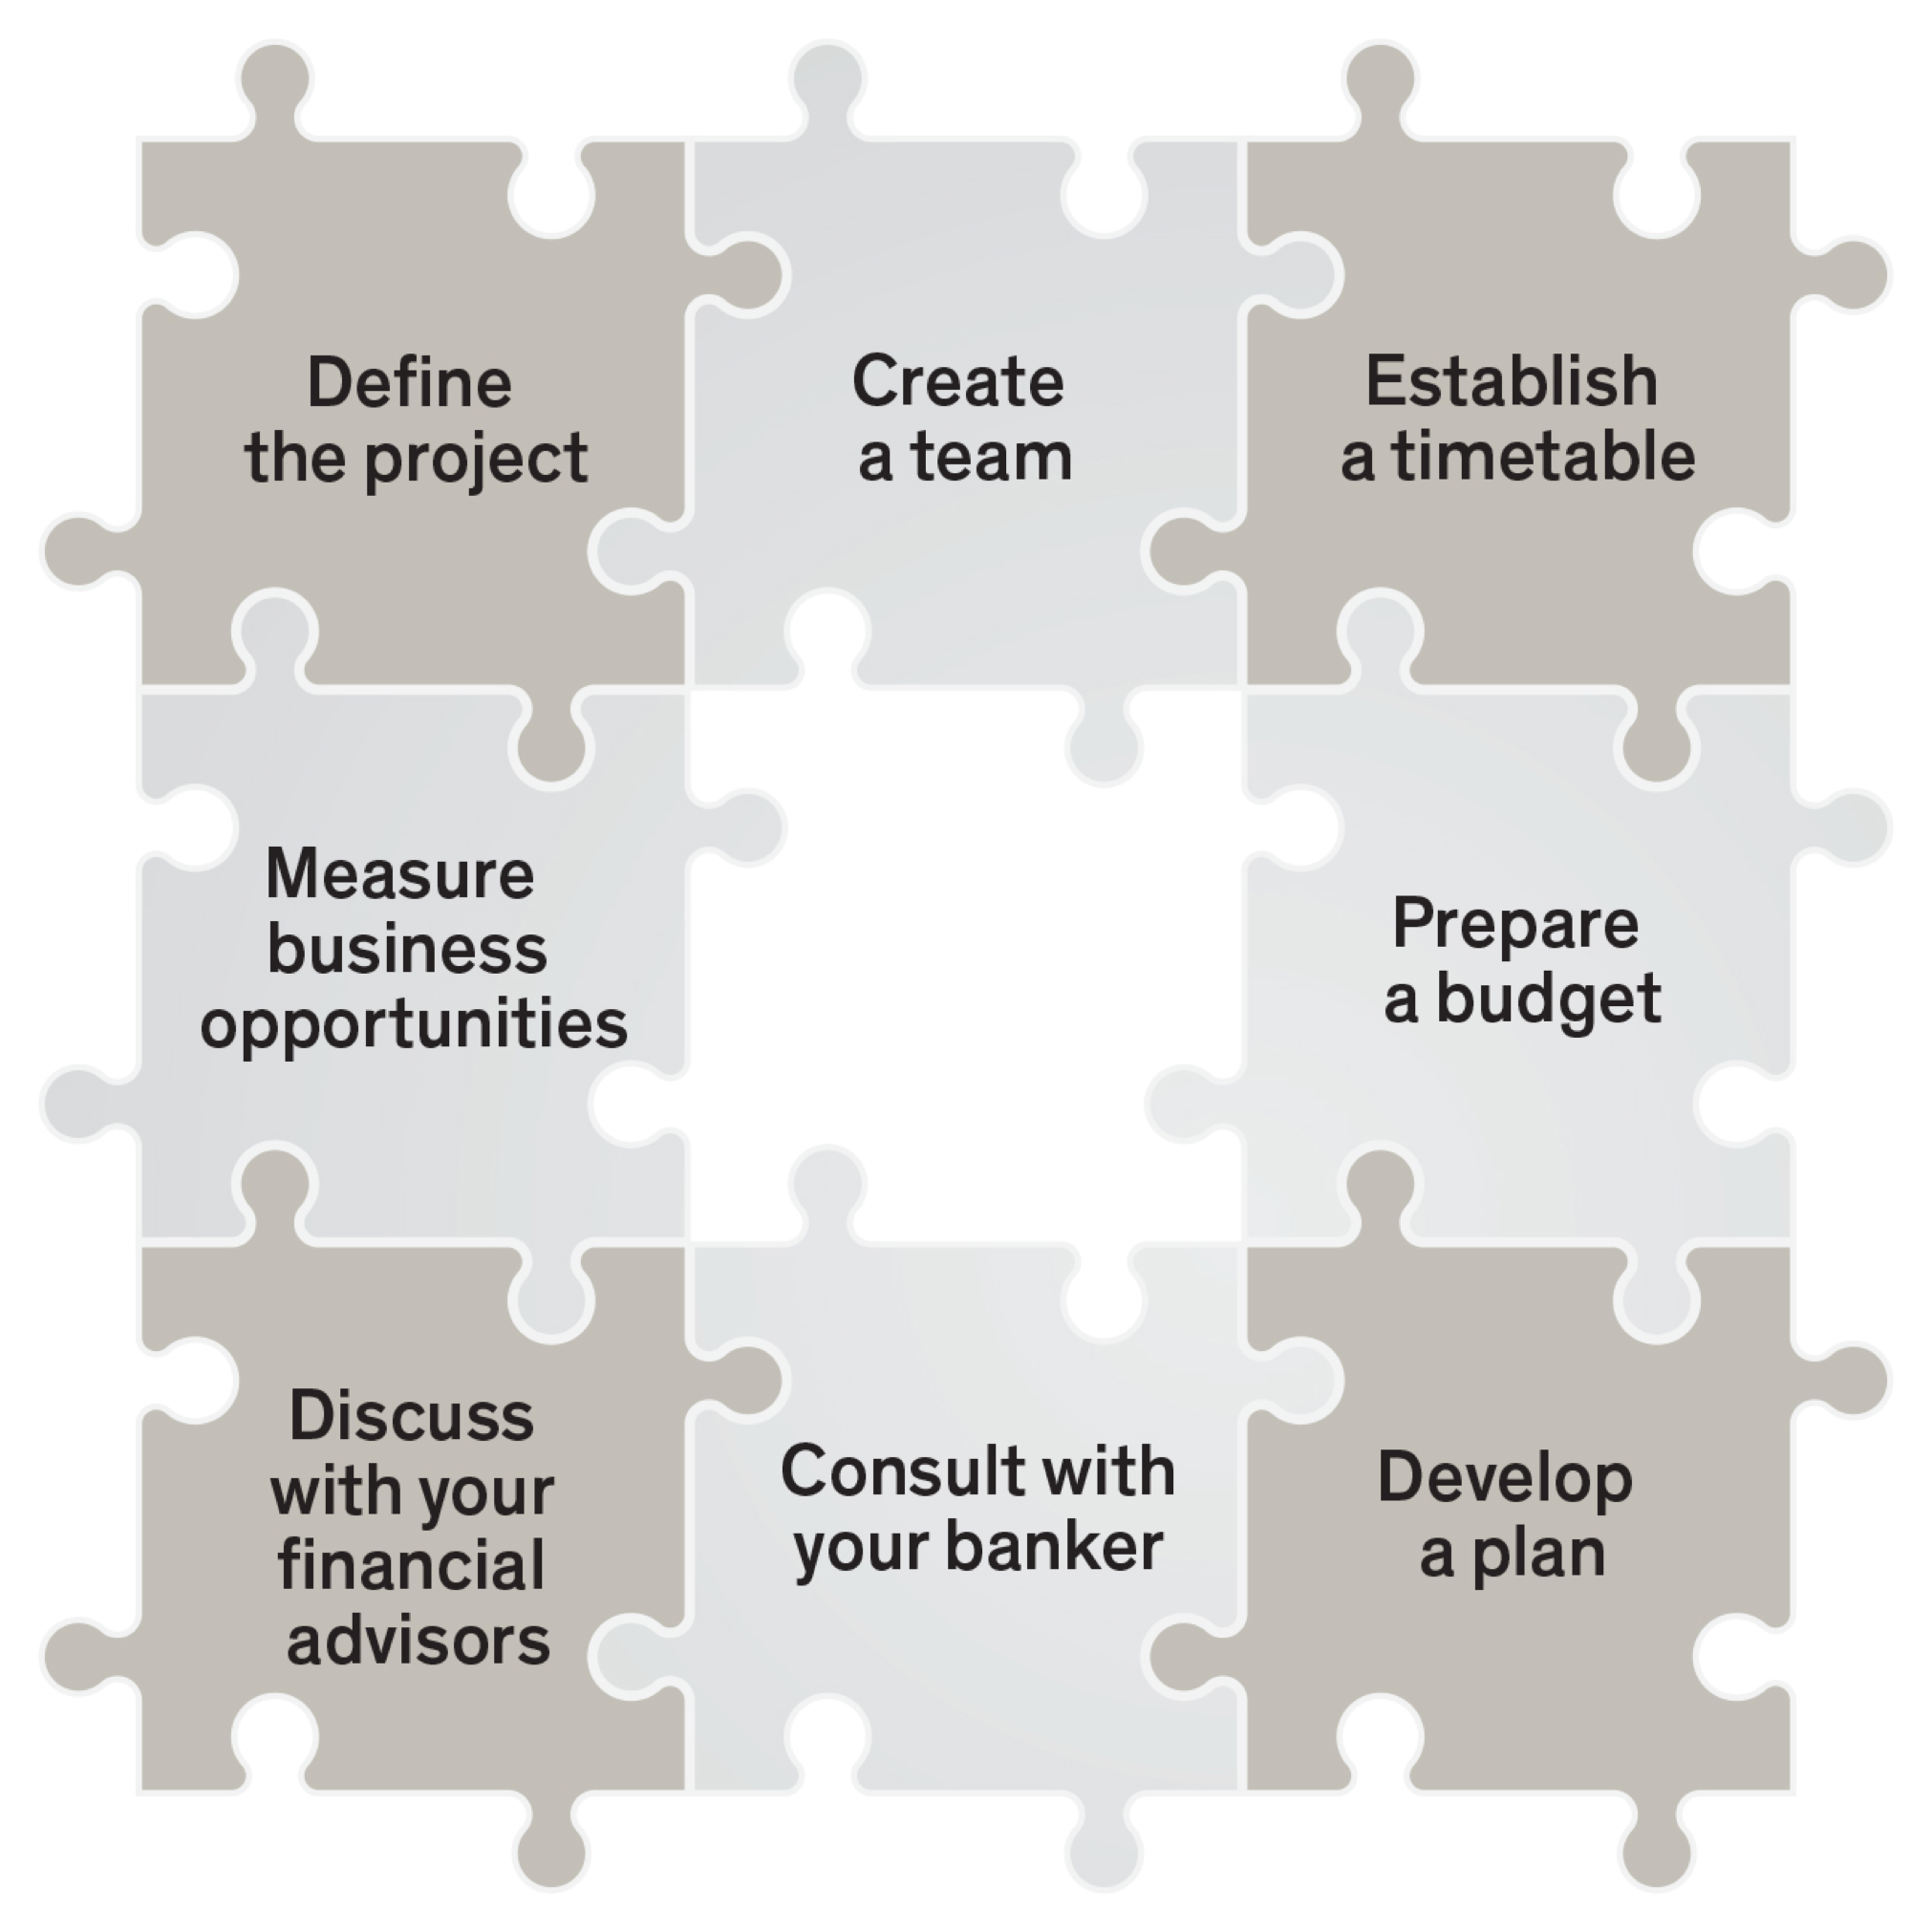 define the project, create a team, establish a timetable, measure business opportunities, prepare a budget, discuss with your financial advisors, consult with your banker, develop a plan - graph